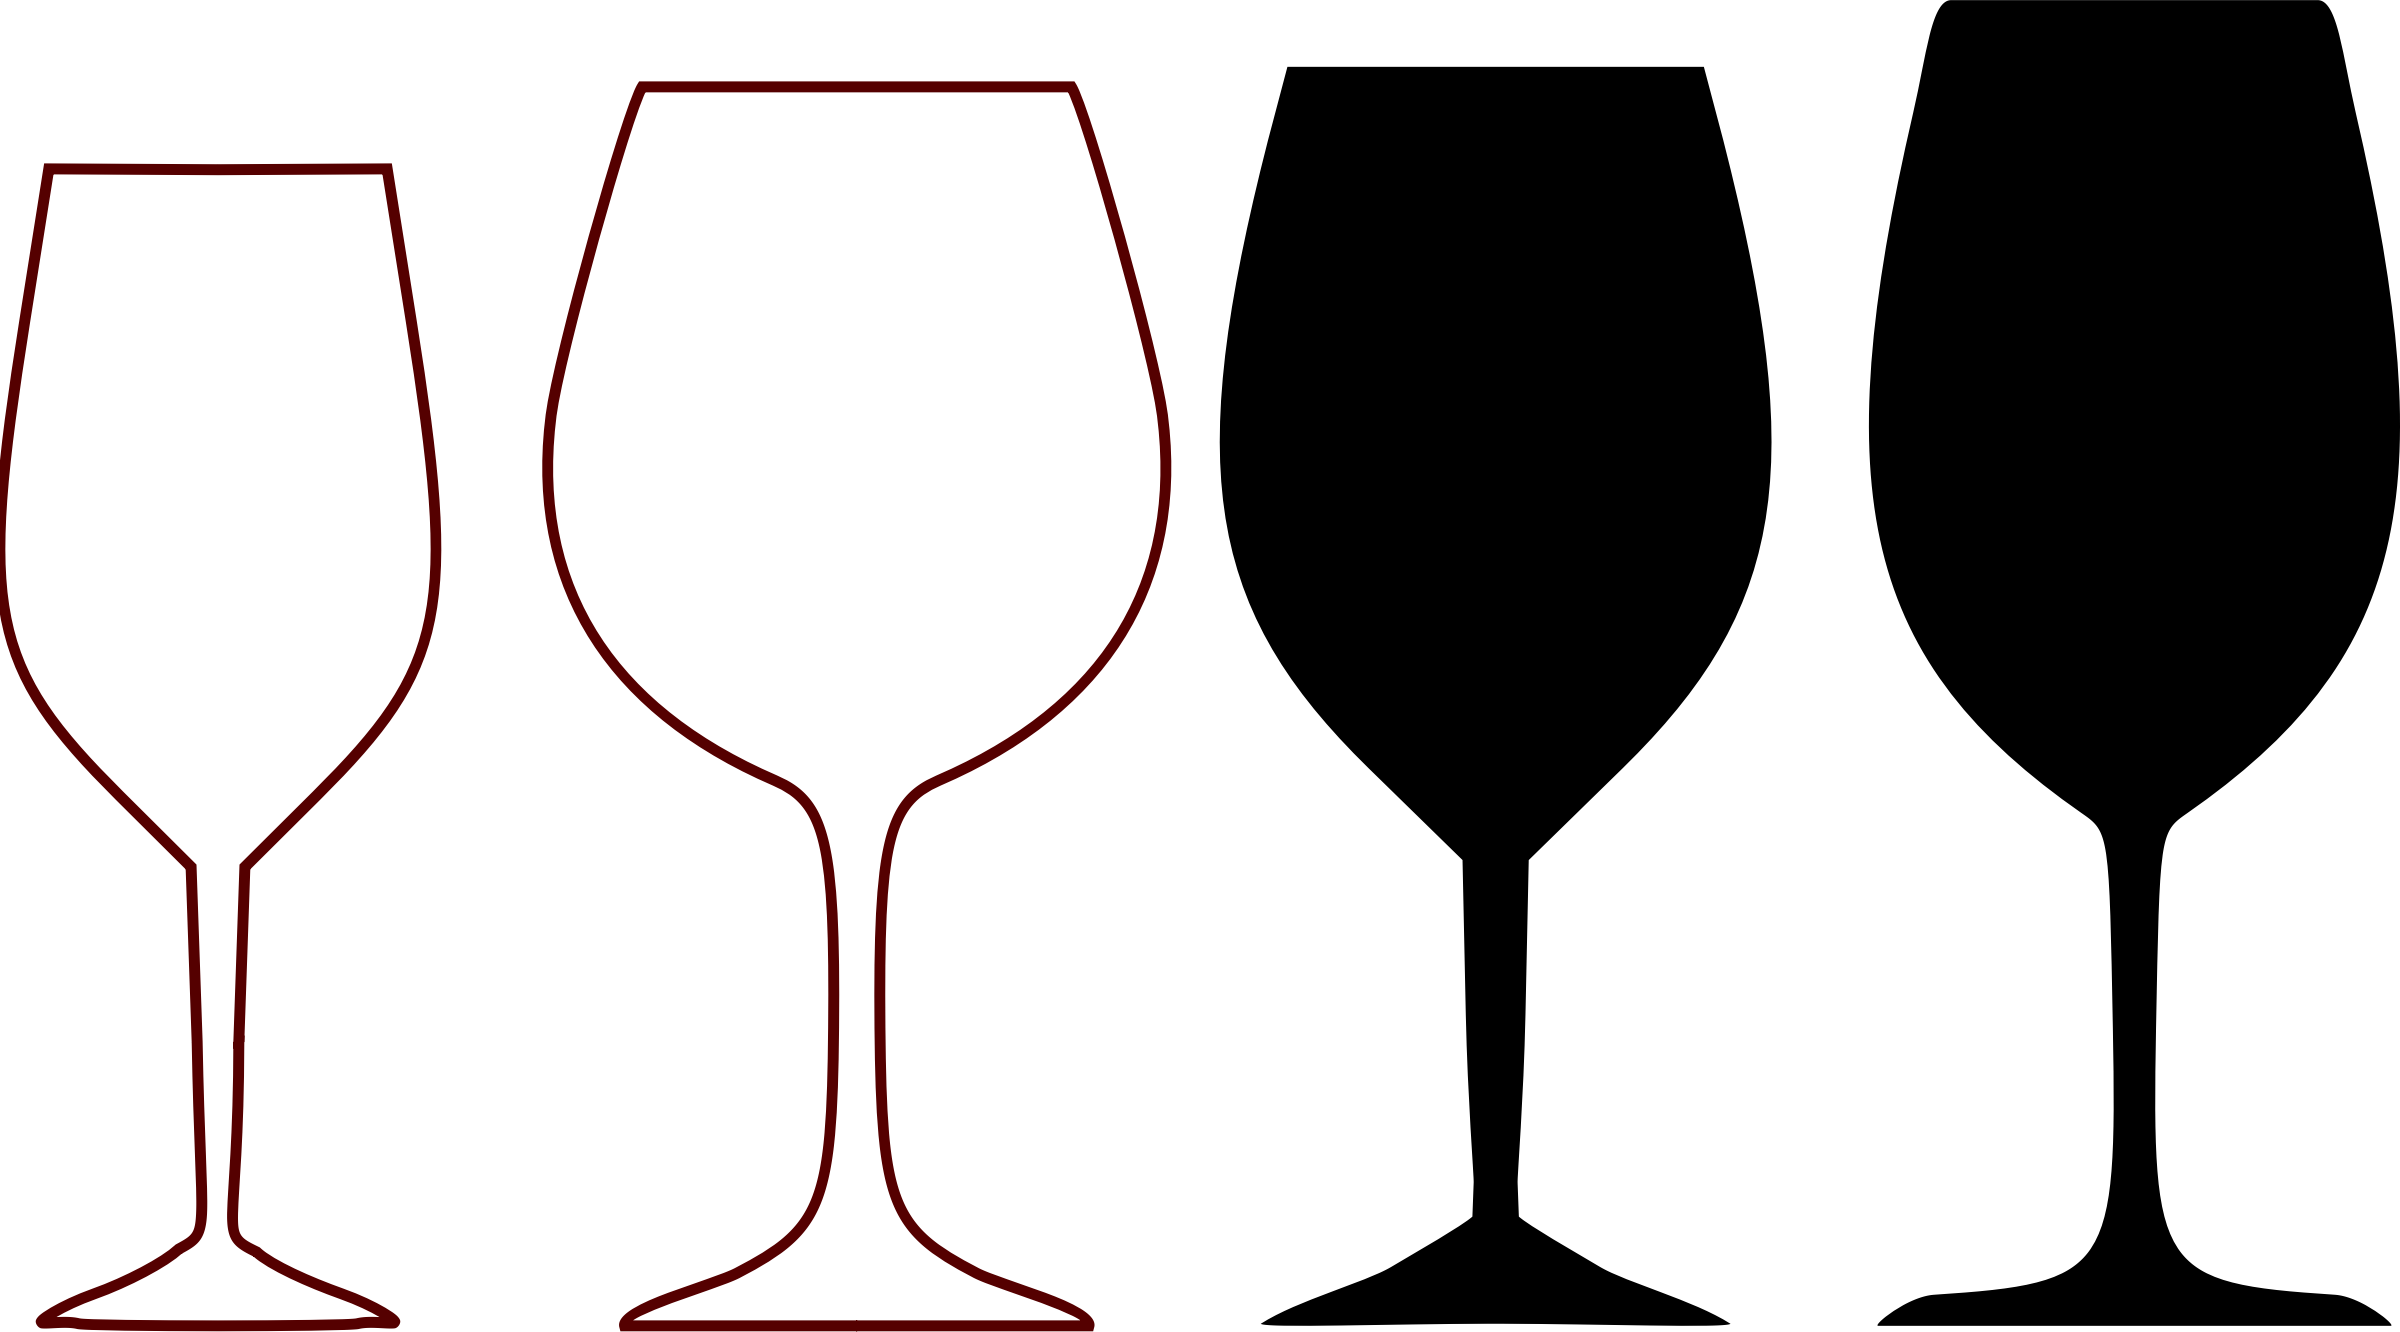 banner royalty free download Goblet drawing shiny object. Wine glass shapes by